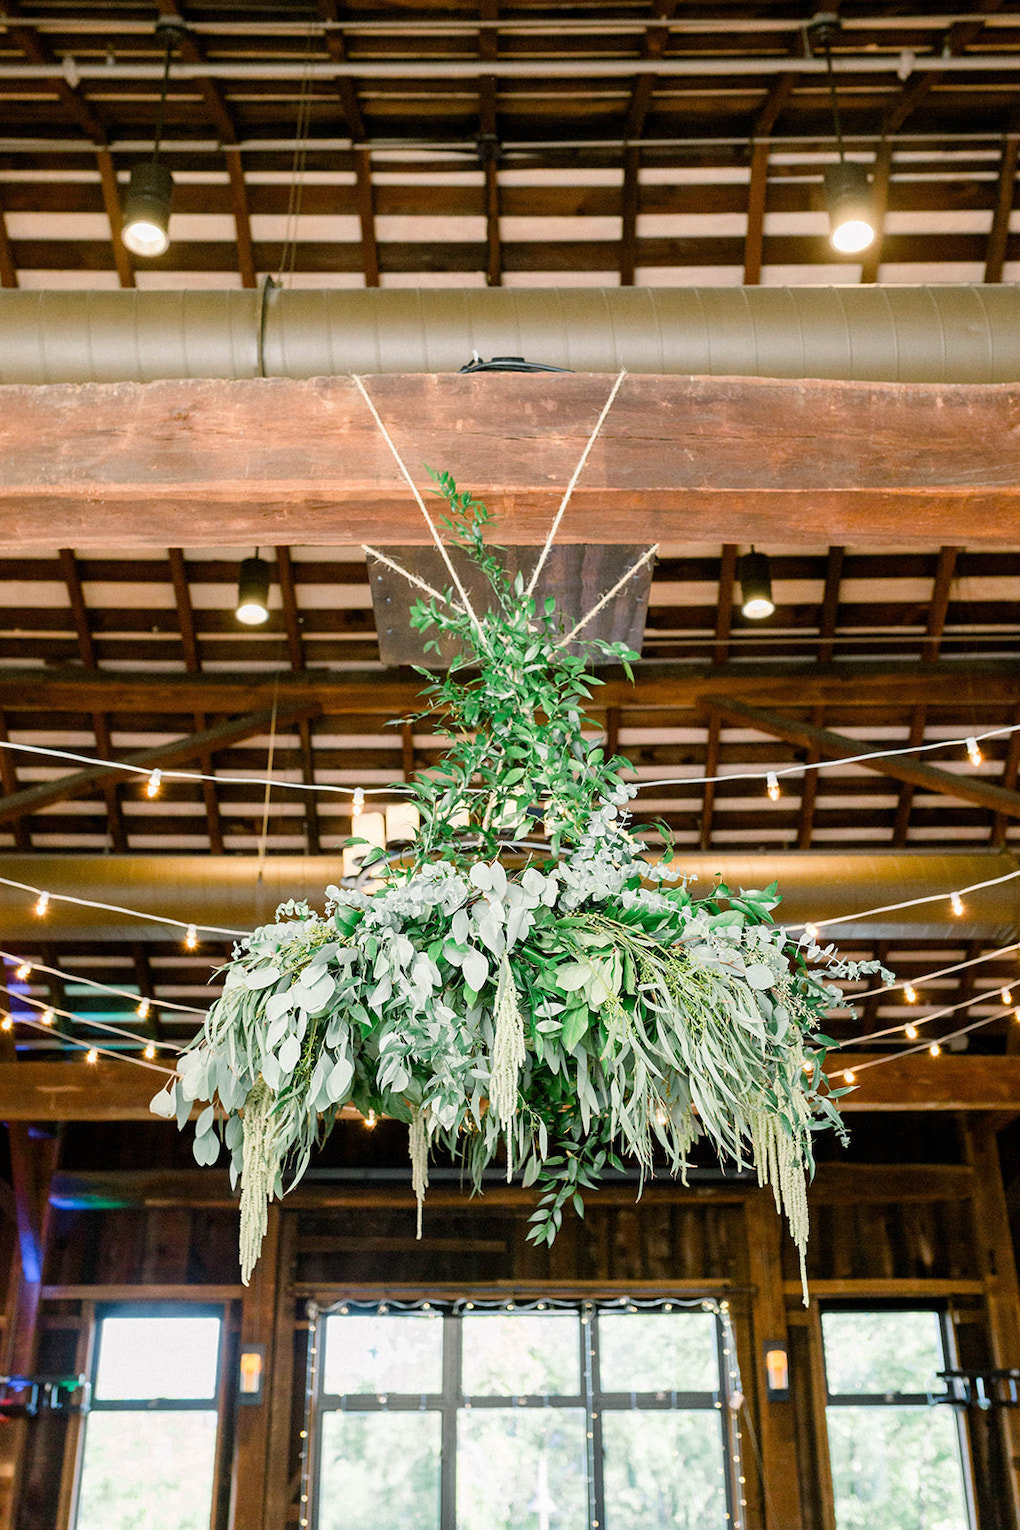 Floral greenery chandelier: Pittsburgh Botanic Garden wedding planned by Exhale Events. See more wedding inspiration at exhale-events.com!